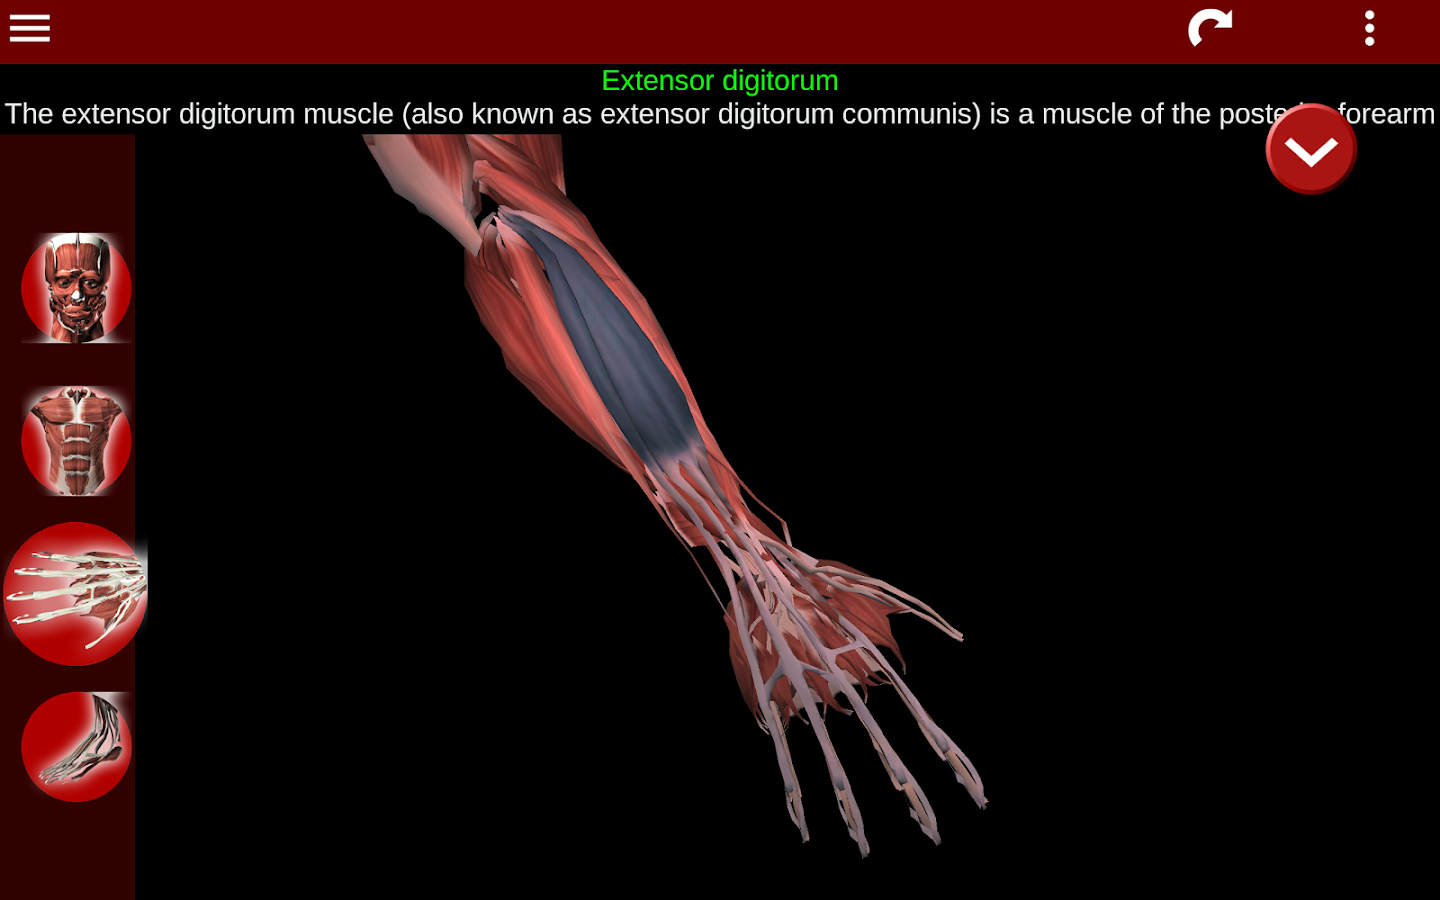 Muscular System 3D (anatomy) 2.0.3 APK Download - Android Medical Apps